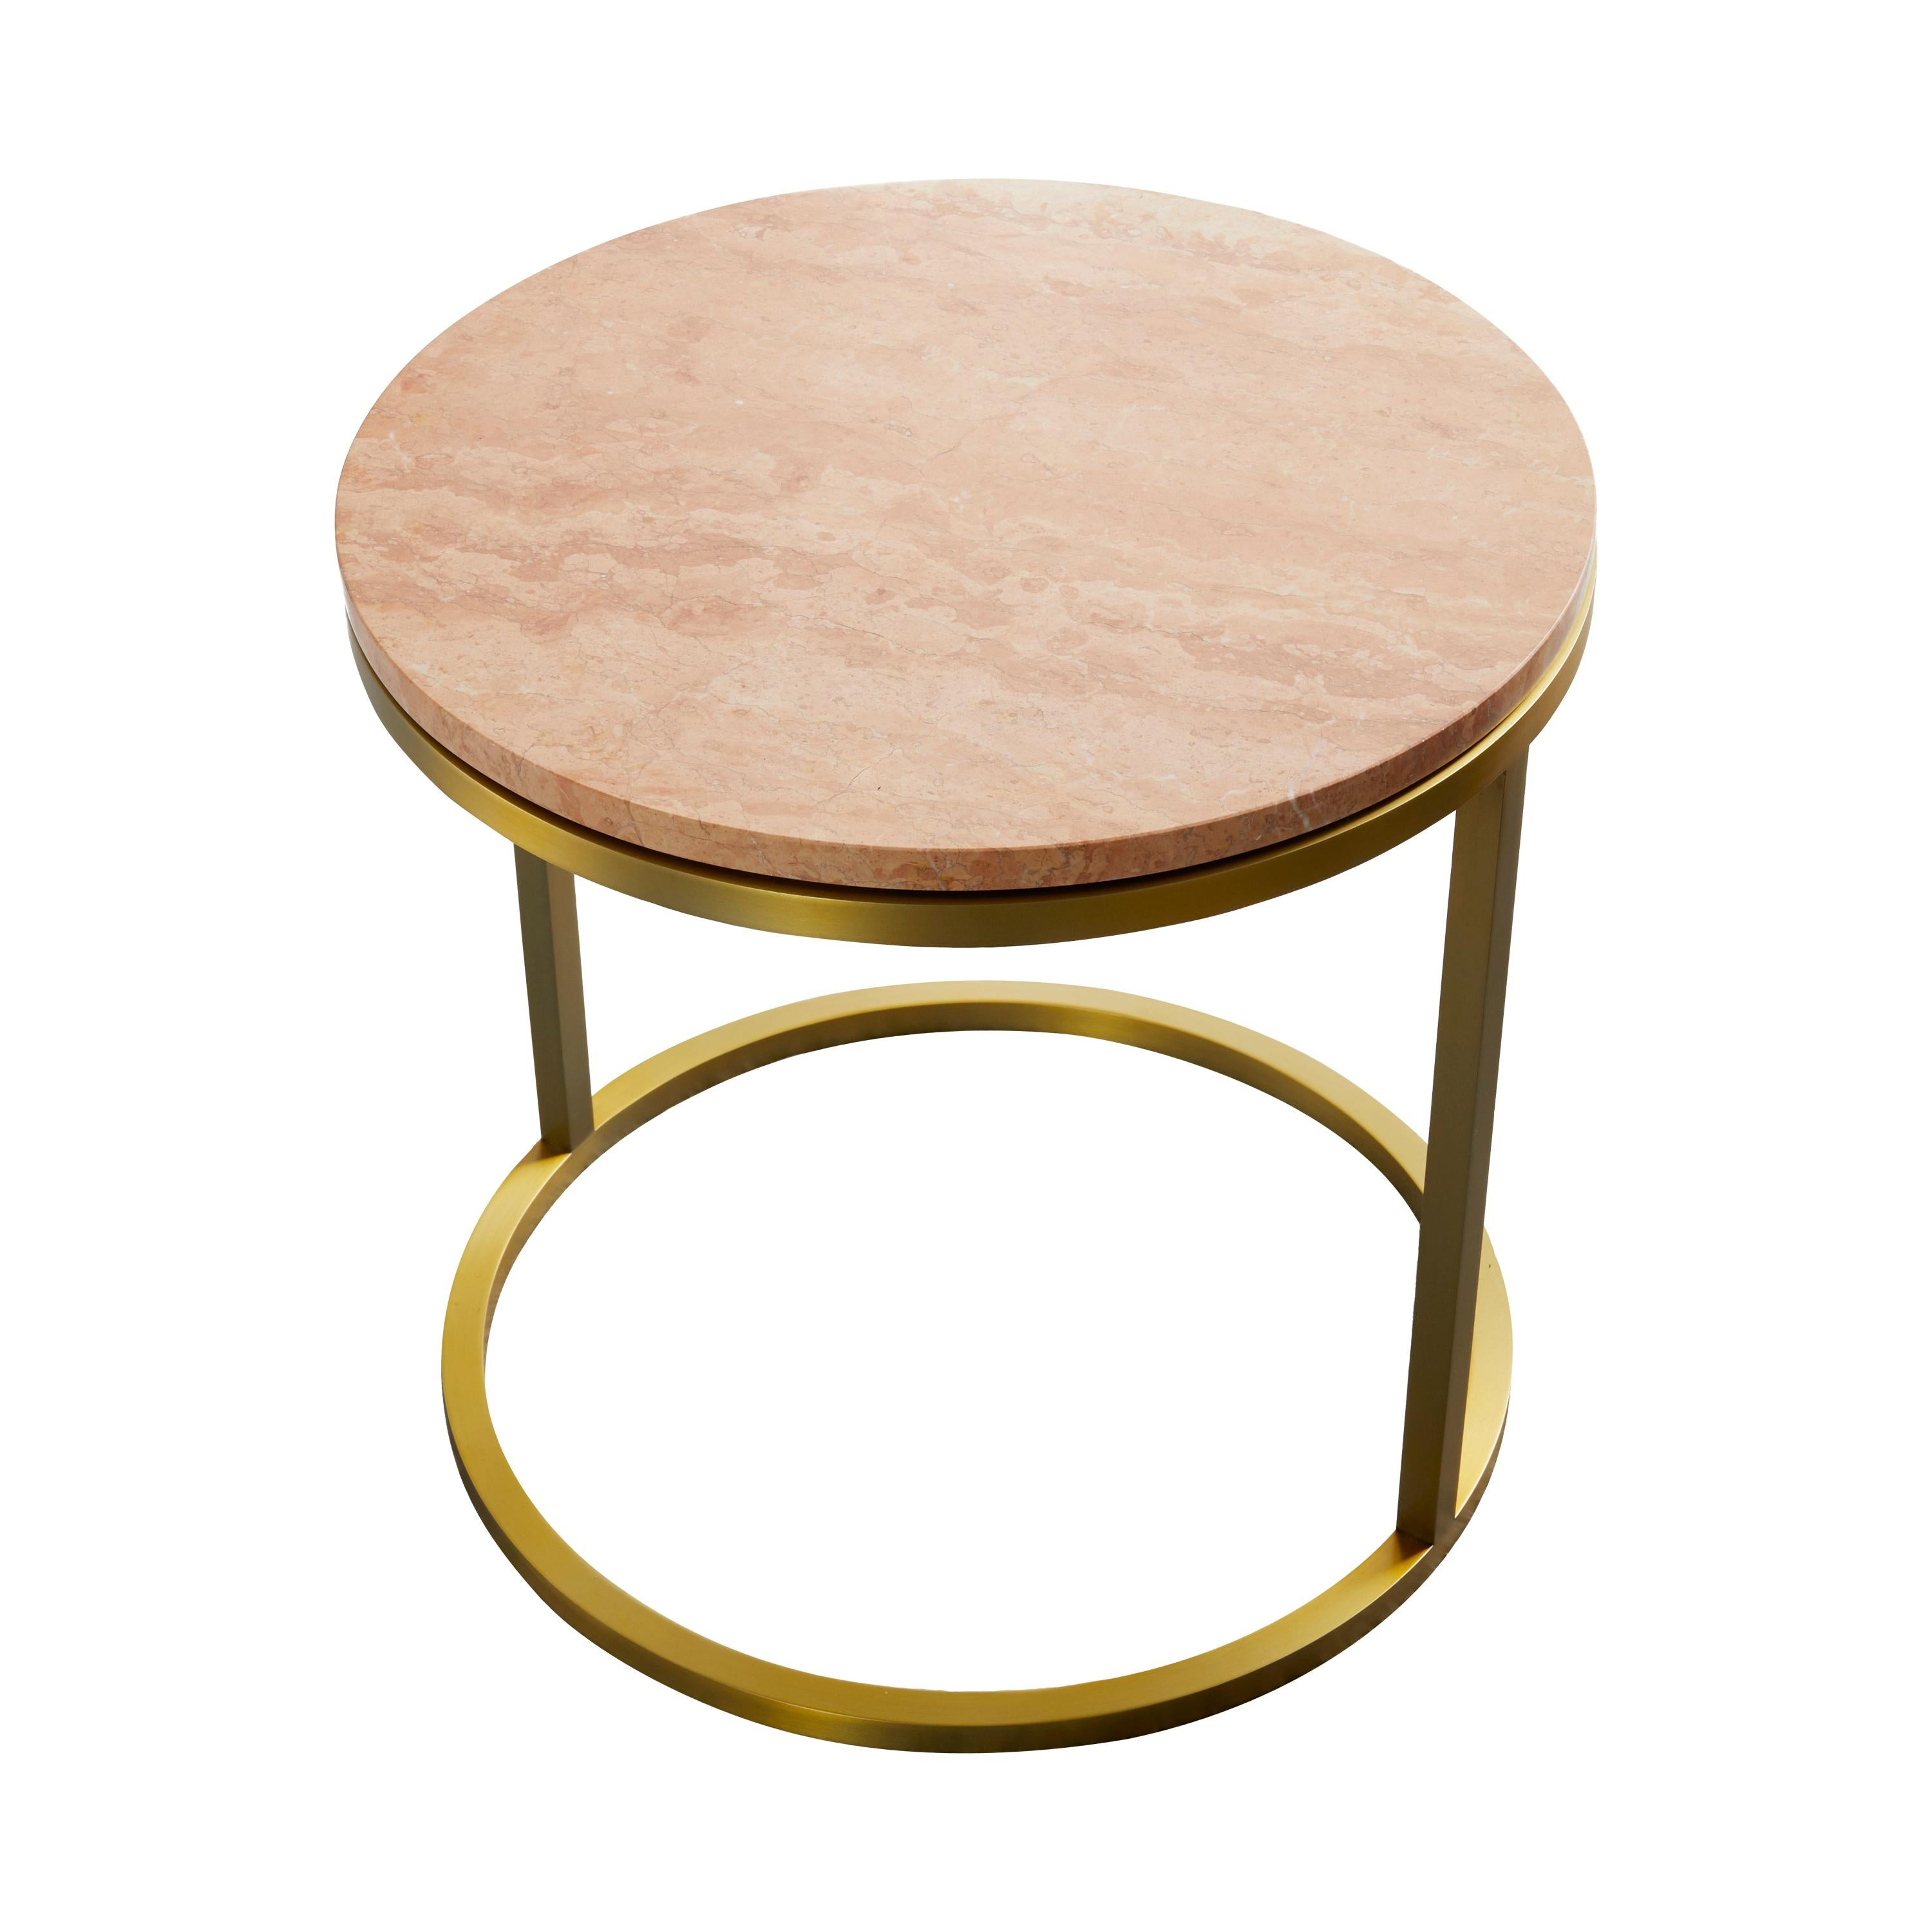 Art Deco Inspired Diana Round Coffee Table in Brass Tinted and Pink